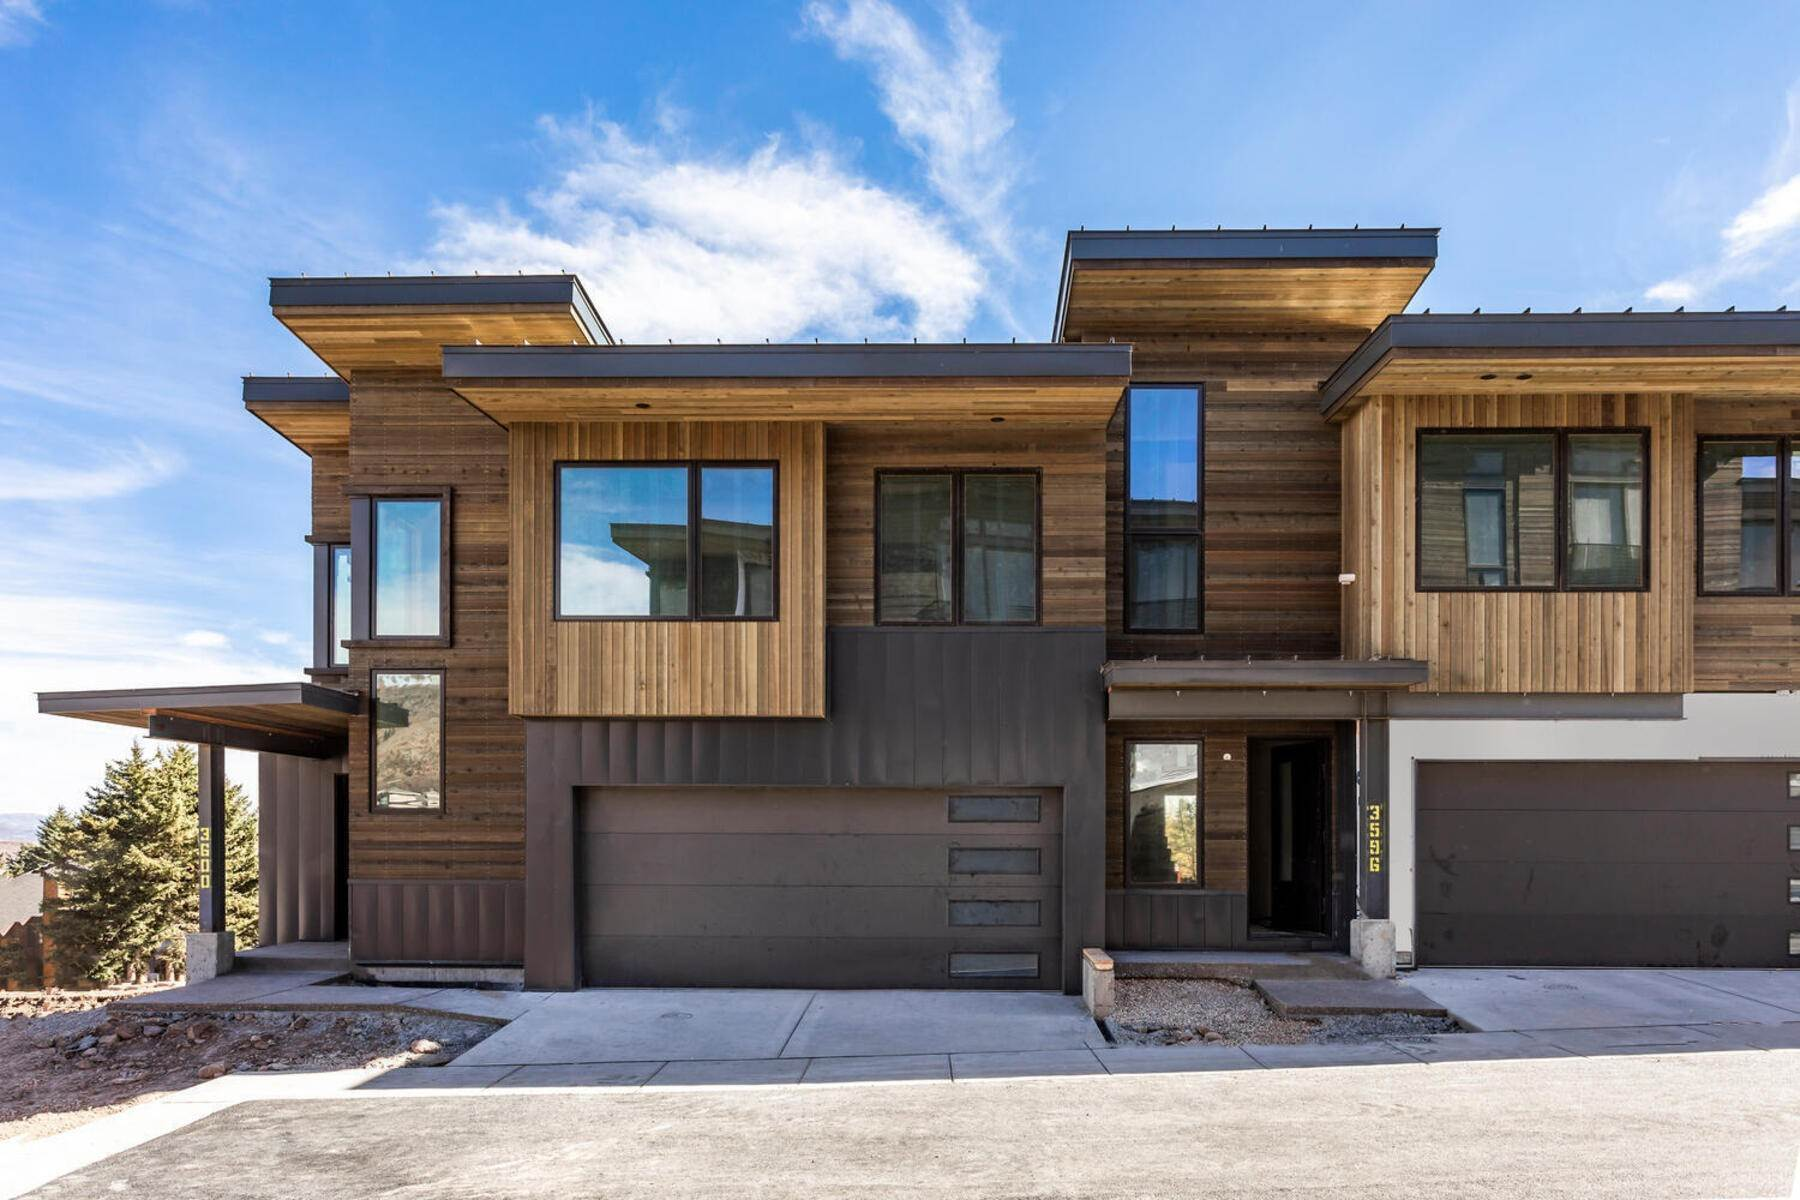 Property for Sale at Ski-In Town Homes in Canyons Village 3482 Ridgeline Drive Park City, Utah 84098 United States